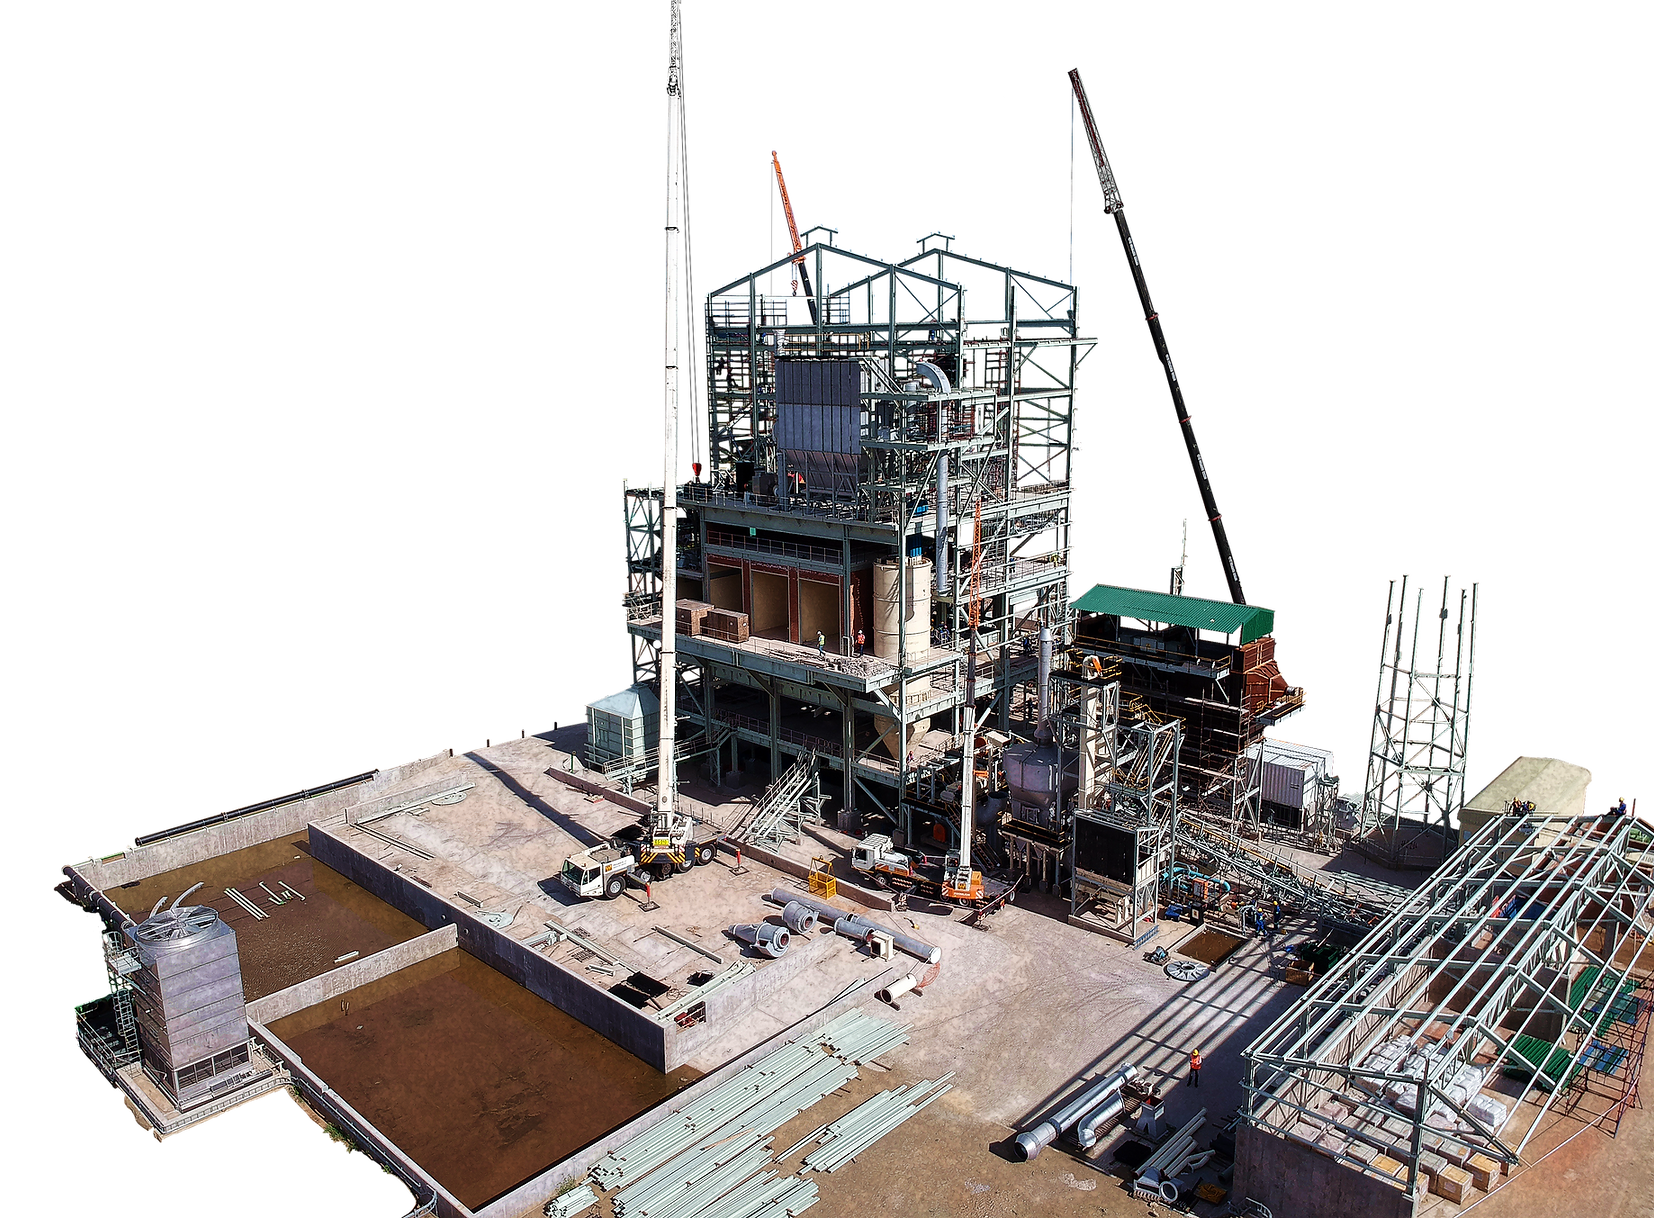 GLPS builds Anglo American Platinum - Unki PGM Smelter